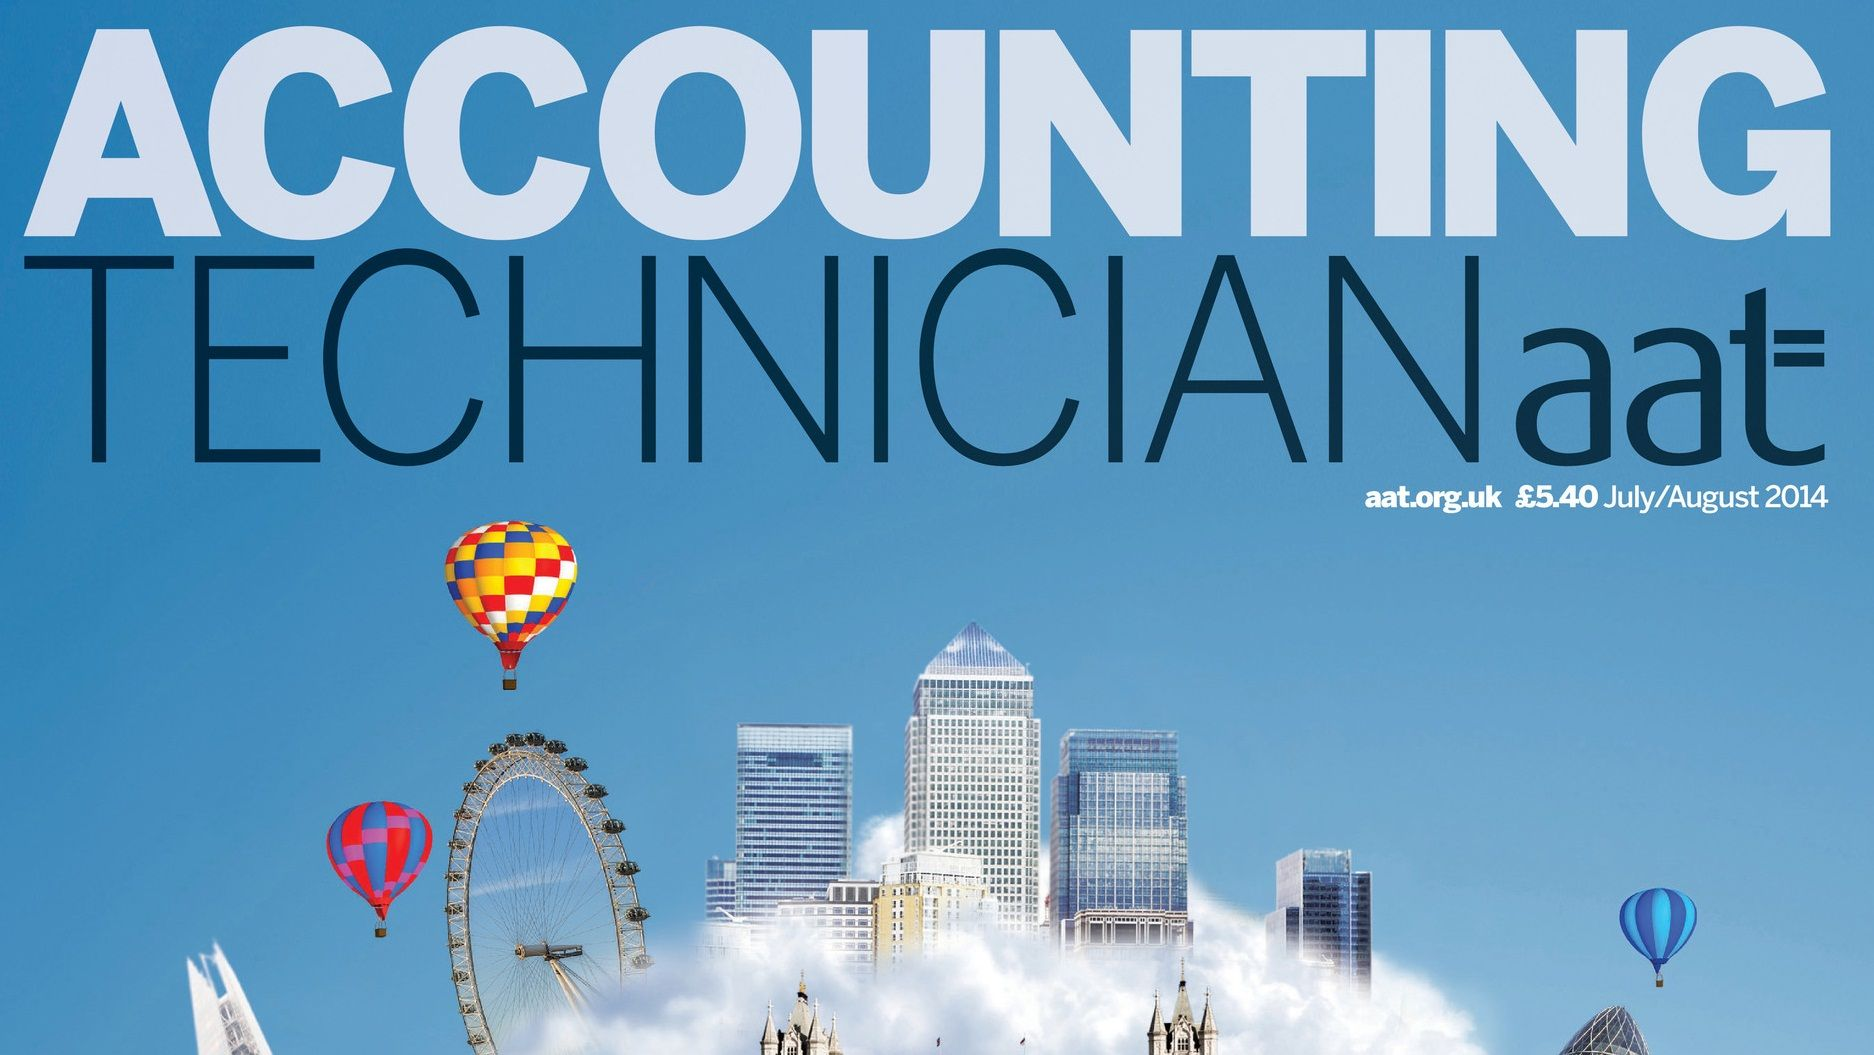 Accounting Technician magazine nominated for best Business